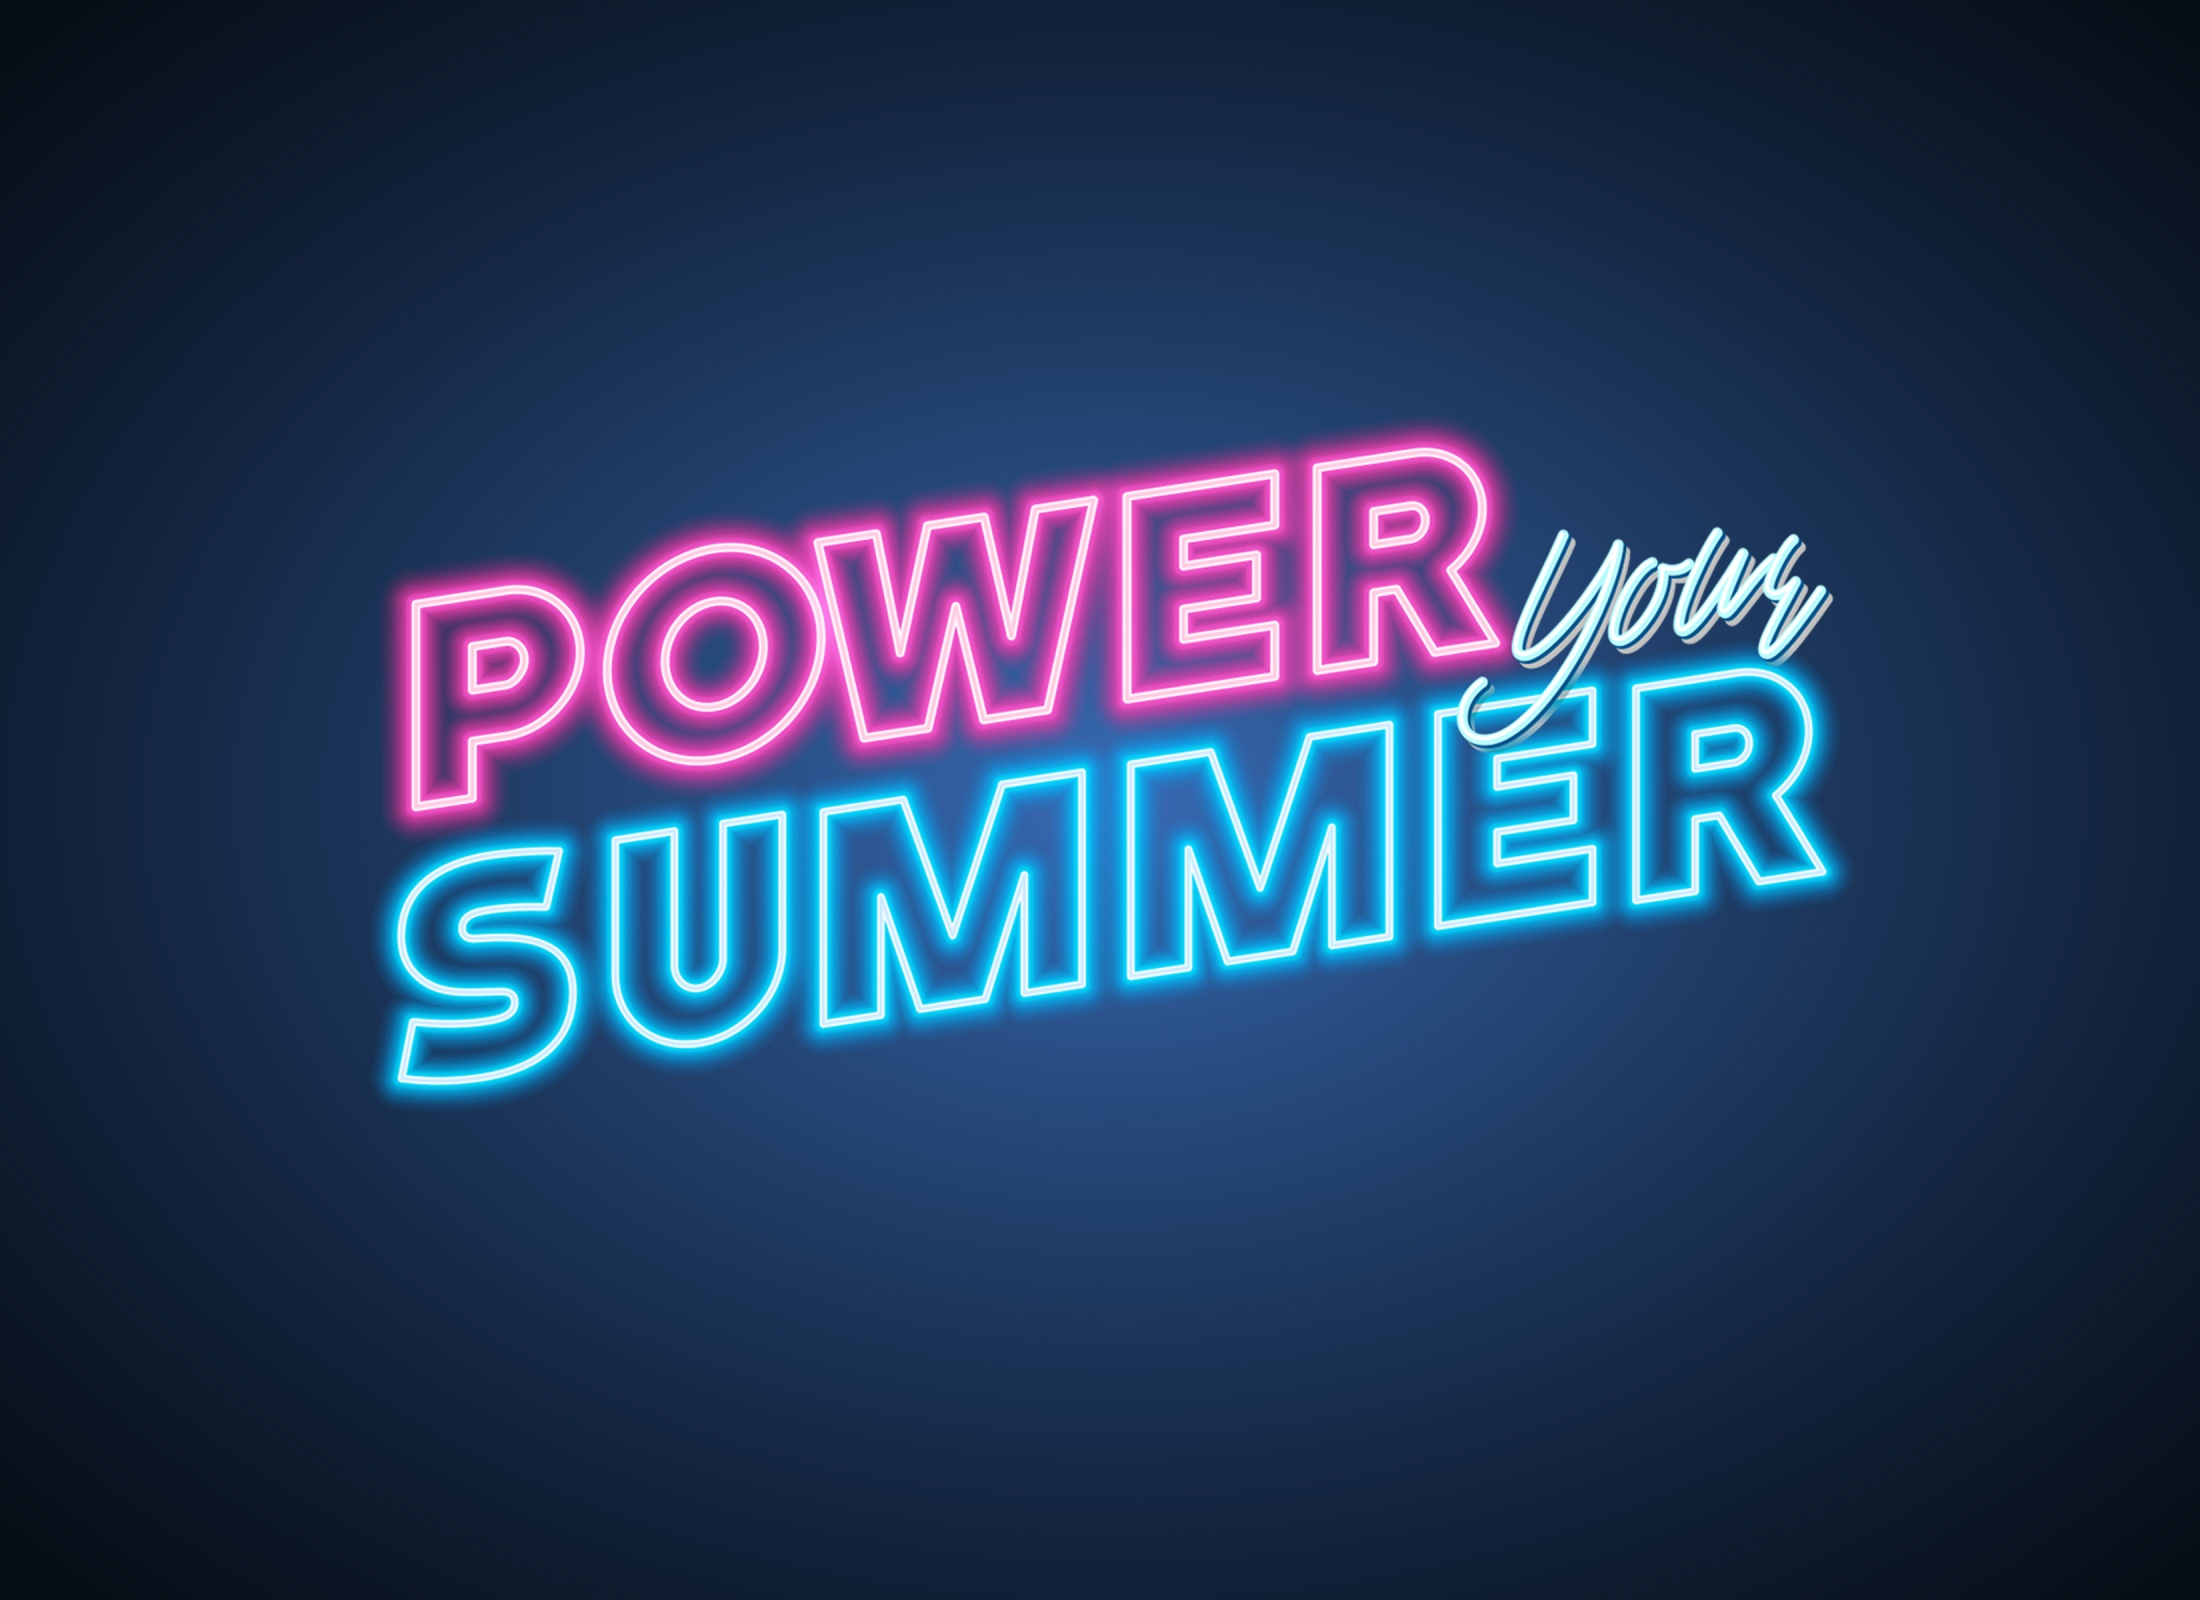 Image Media for POWER YOUR SUMMER